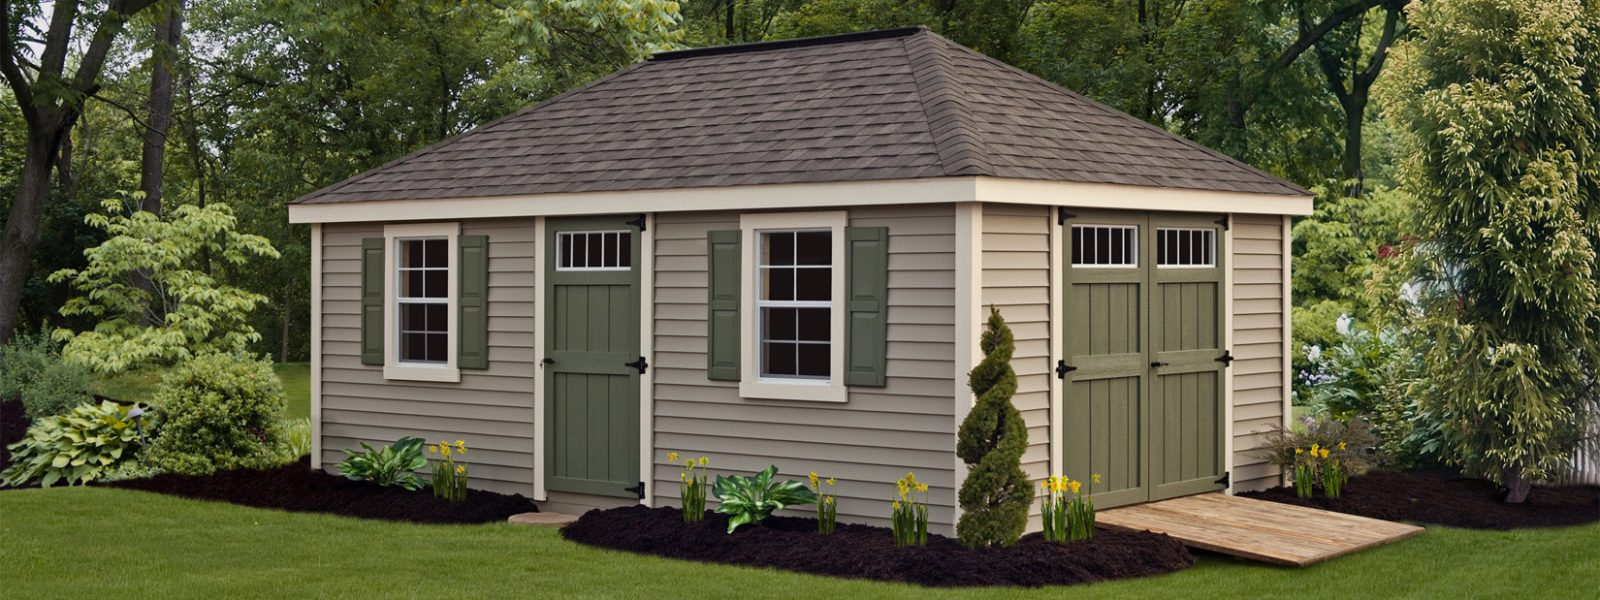 outdoor shed villa style by northwood industries mounds view minnesota